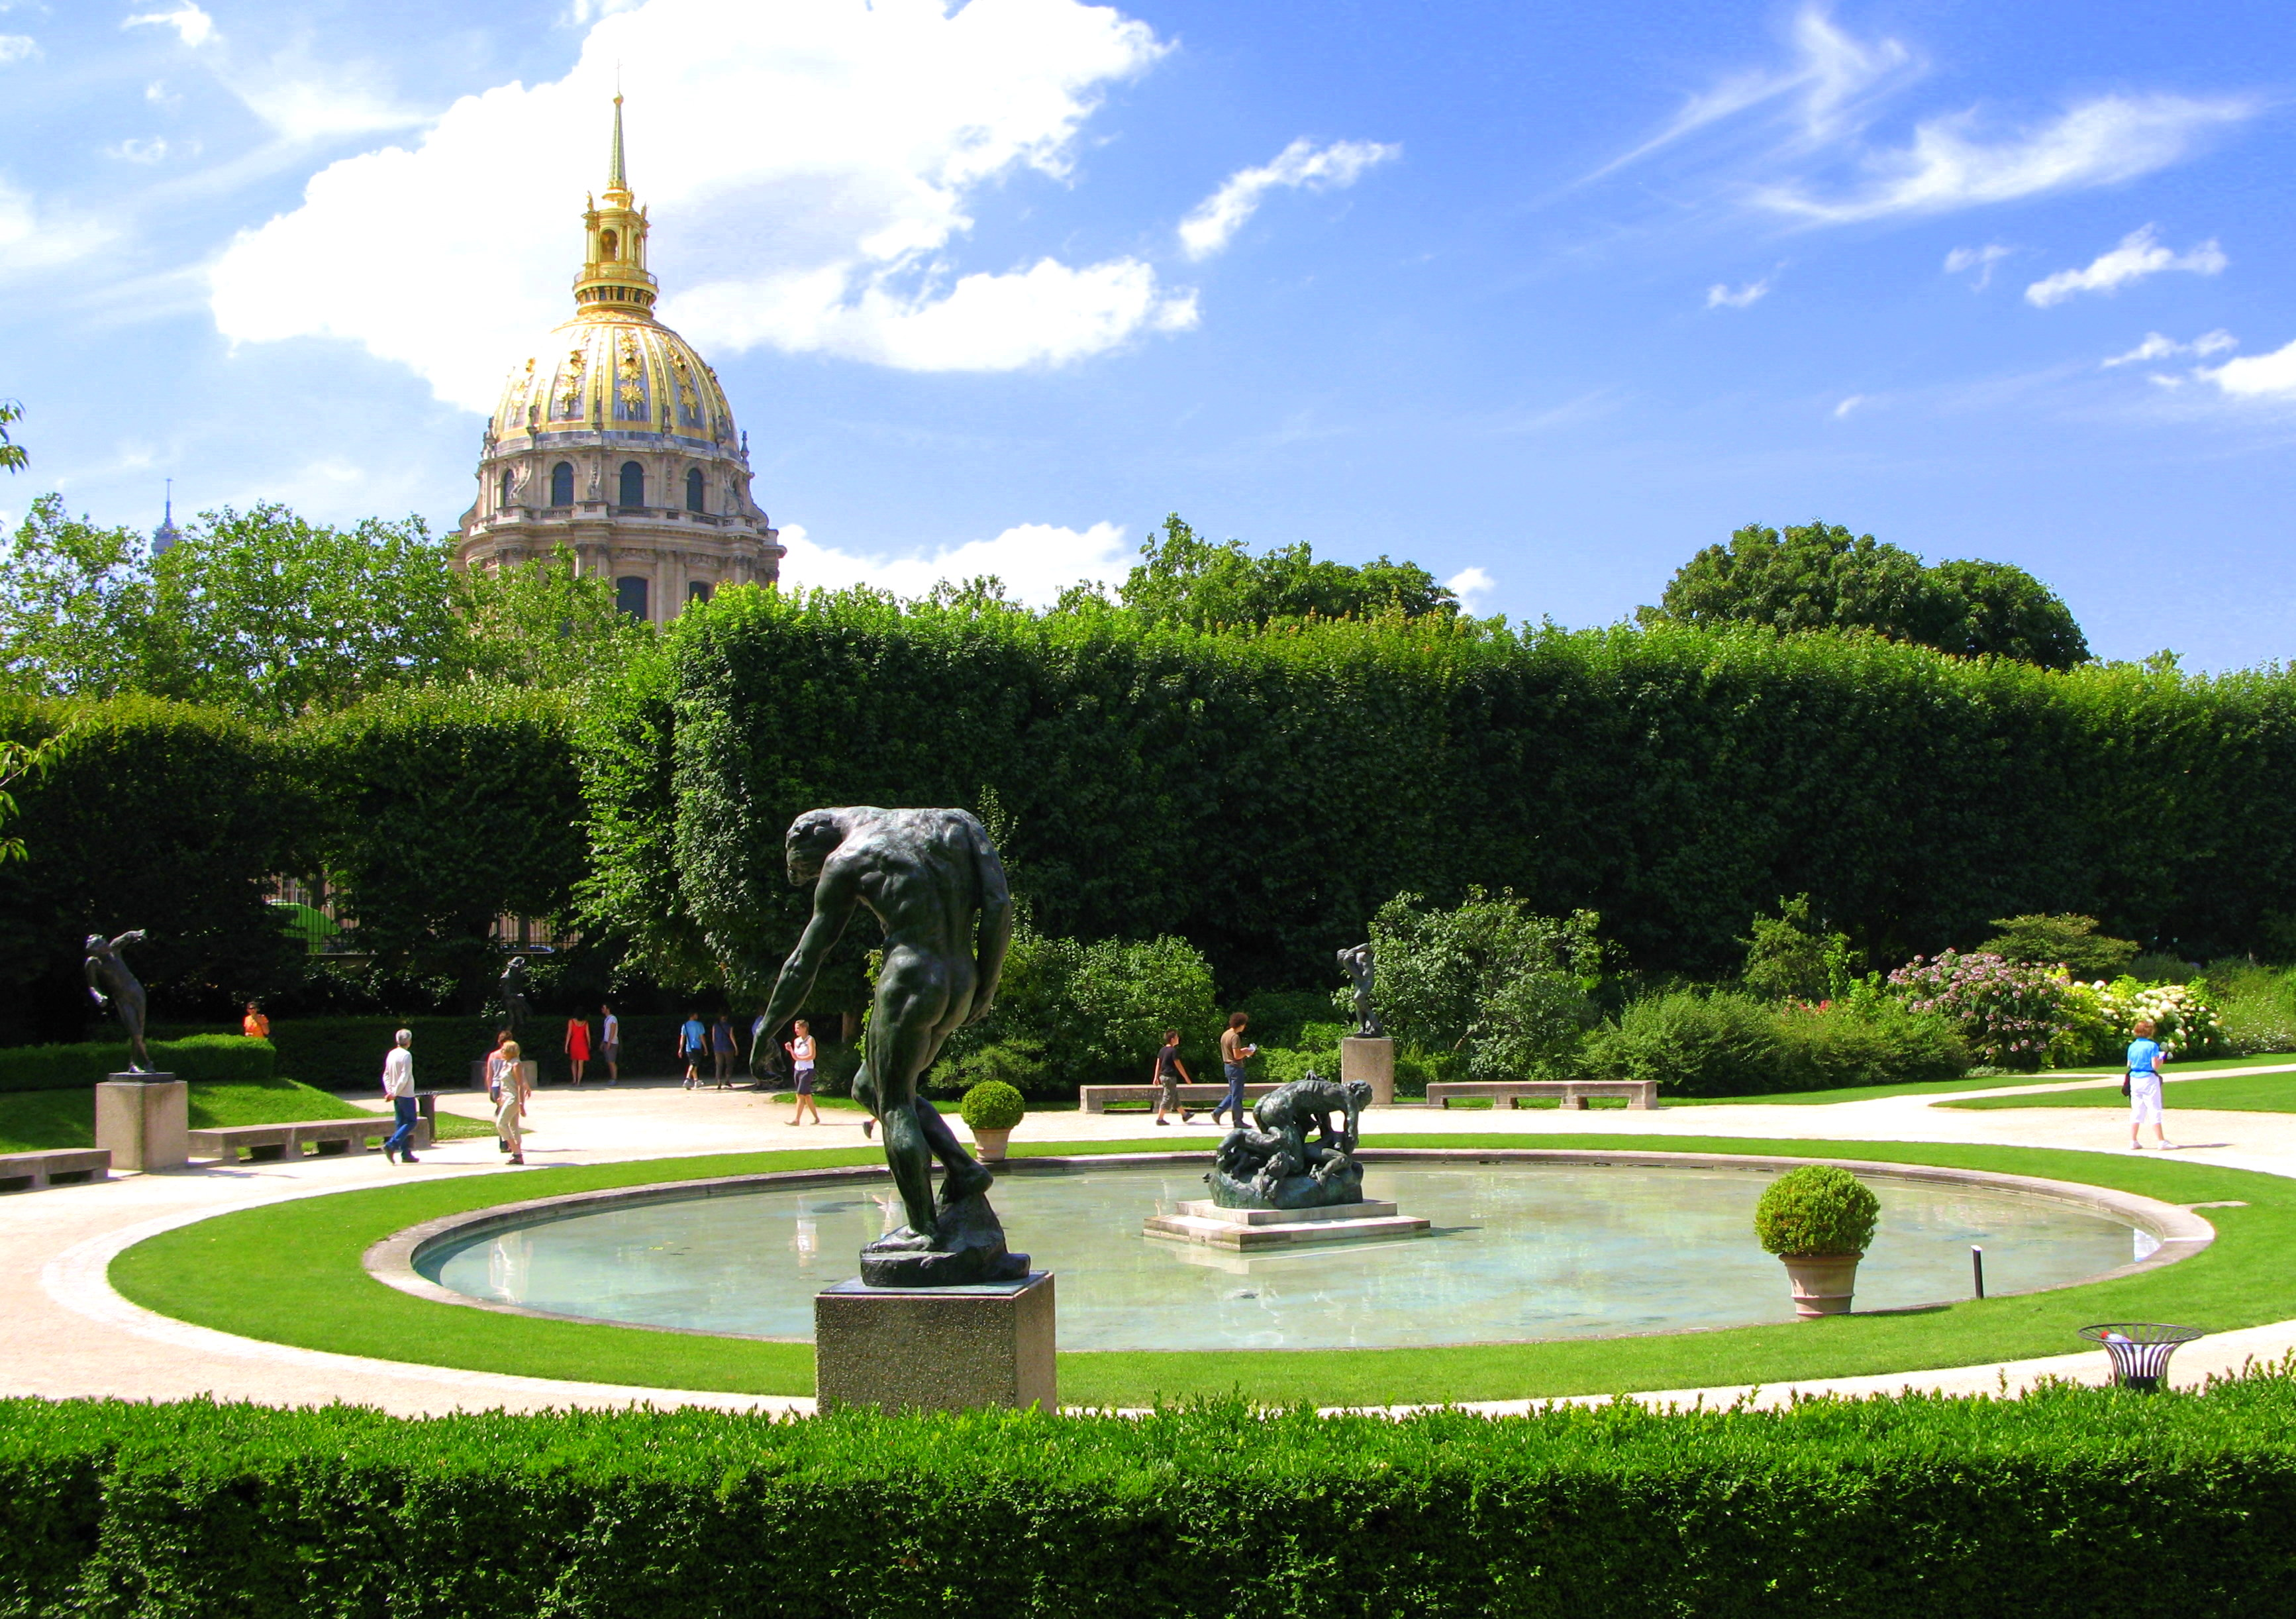 Le jardin du mus e rodin flickr photo sharing for Le jardin du yoga